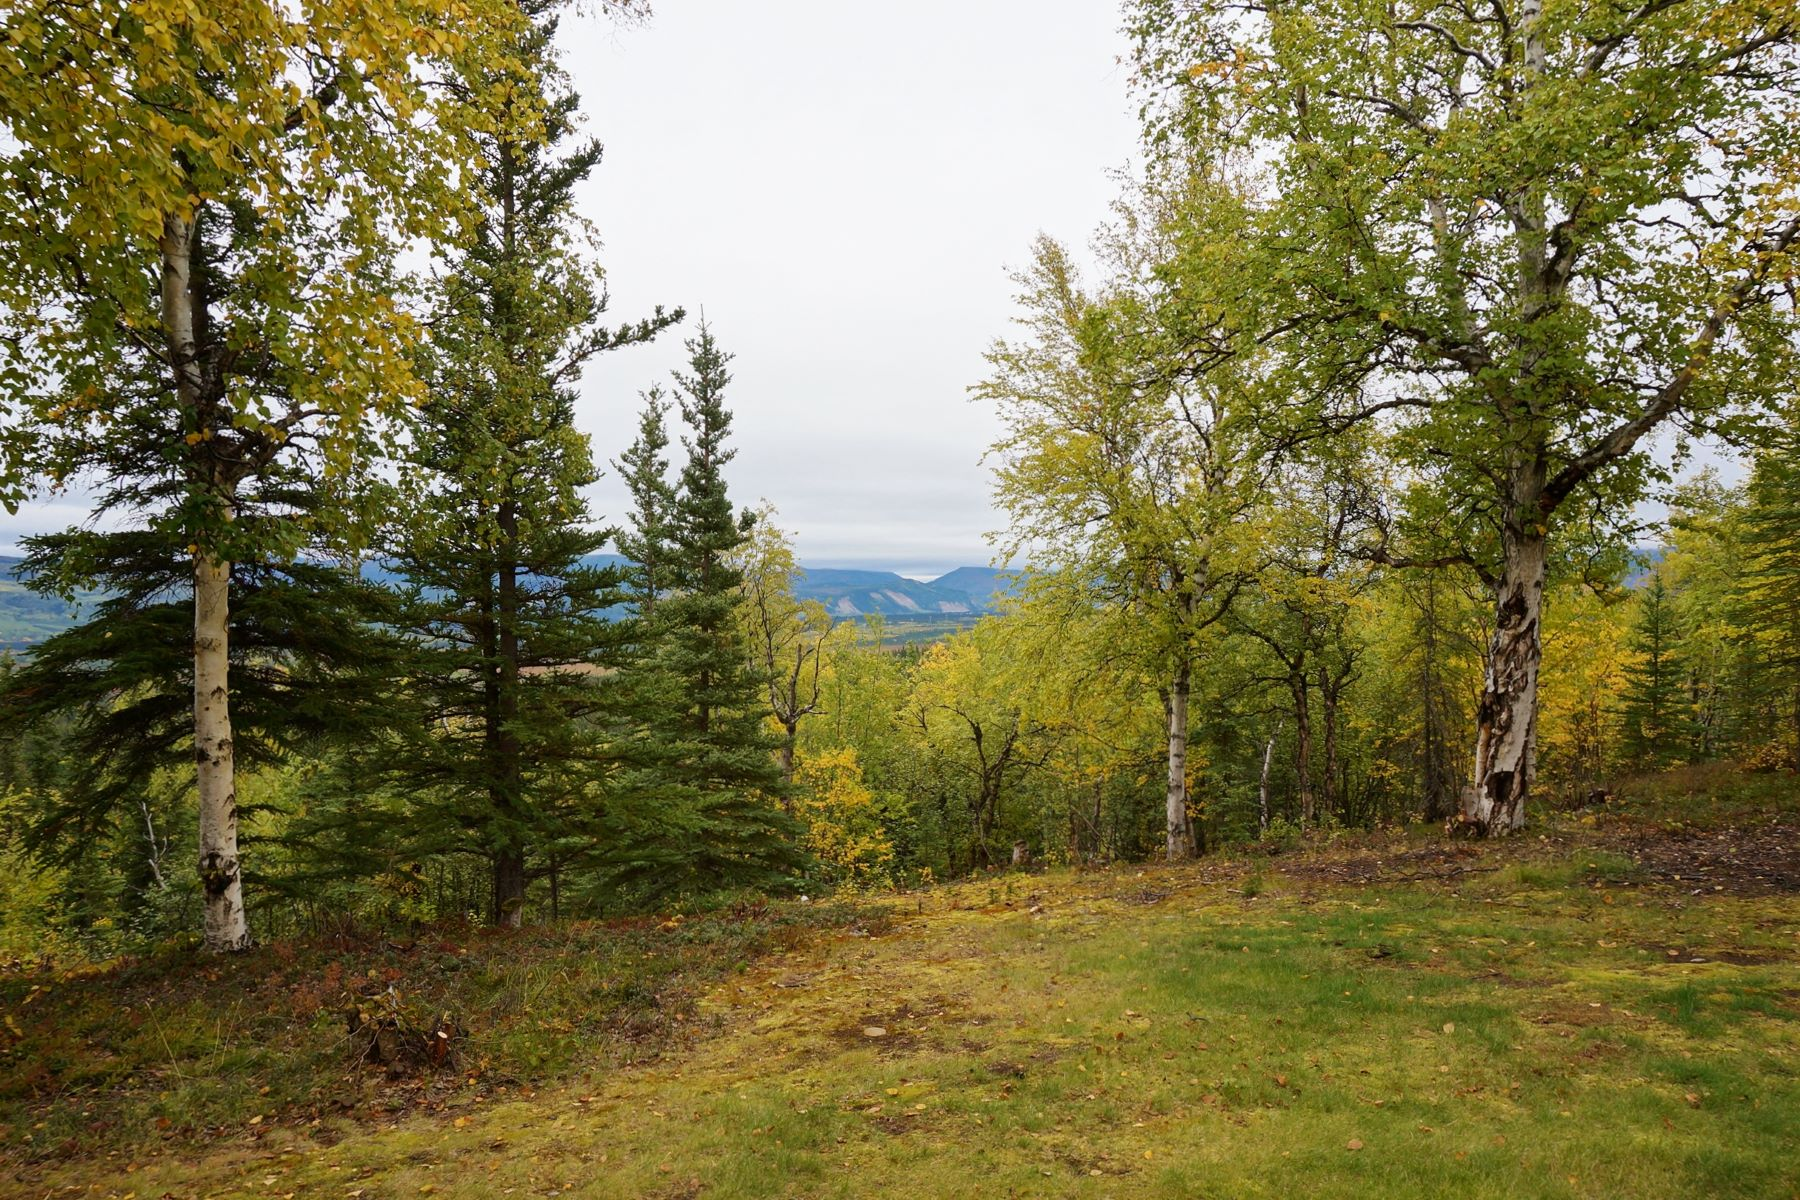 Land for Sale at Lot 6 Ridgetop Cabins Road, Ridgetop Subdivision, Healy, Alaska 99743 United States